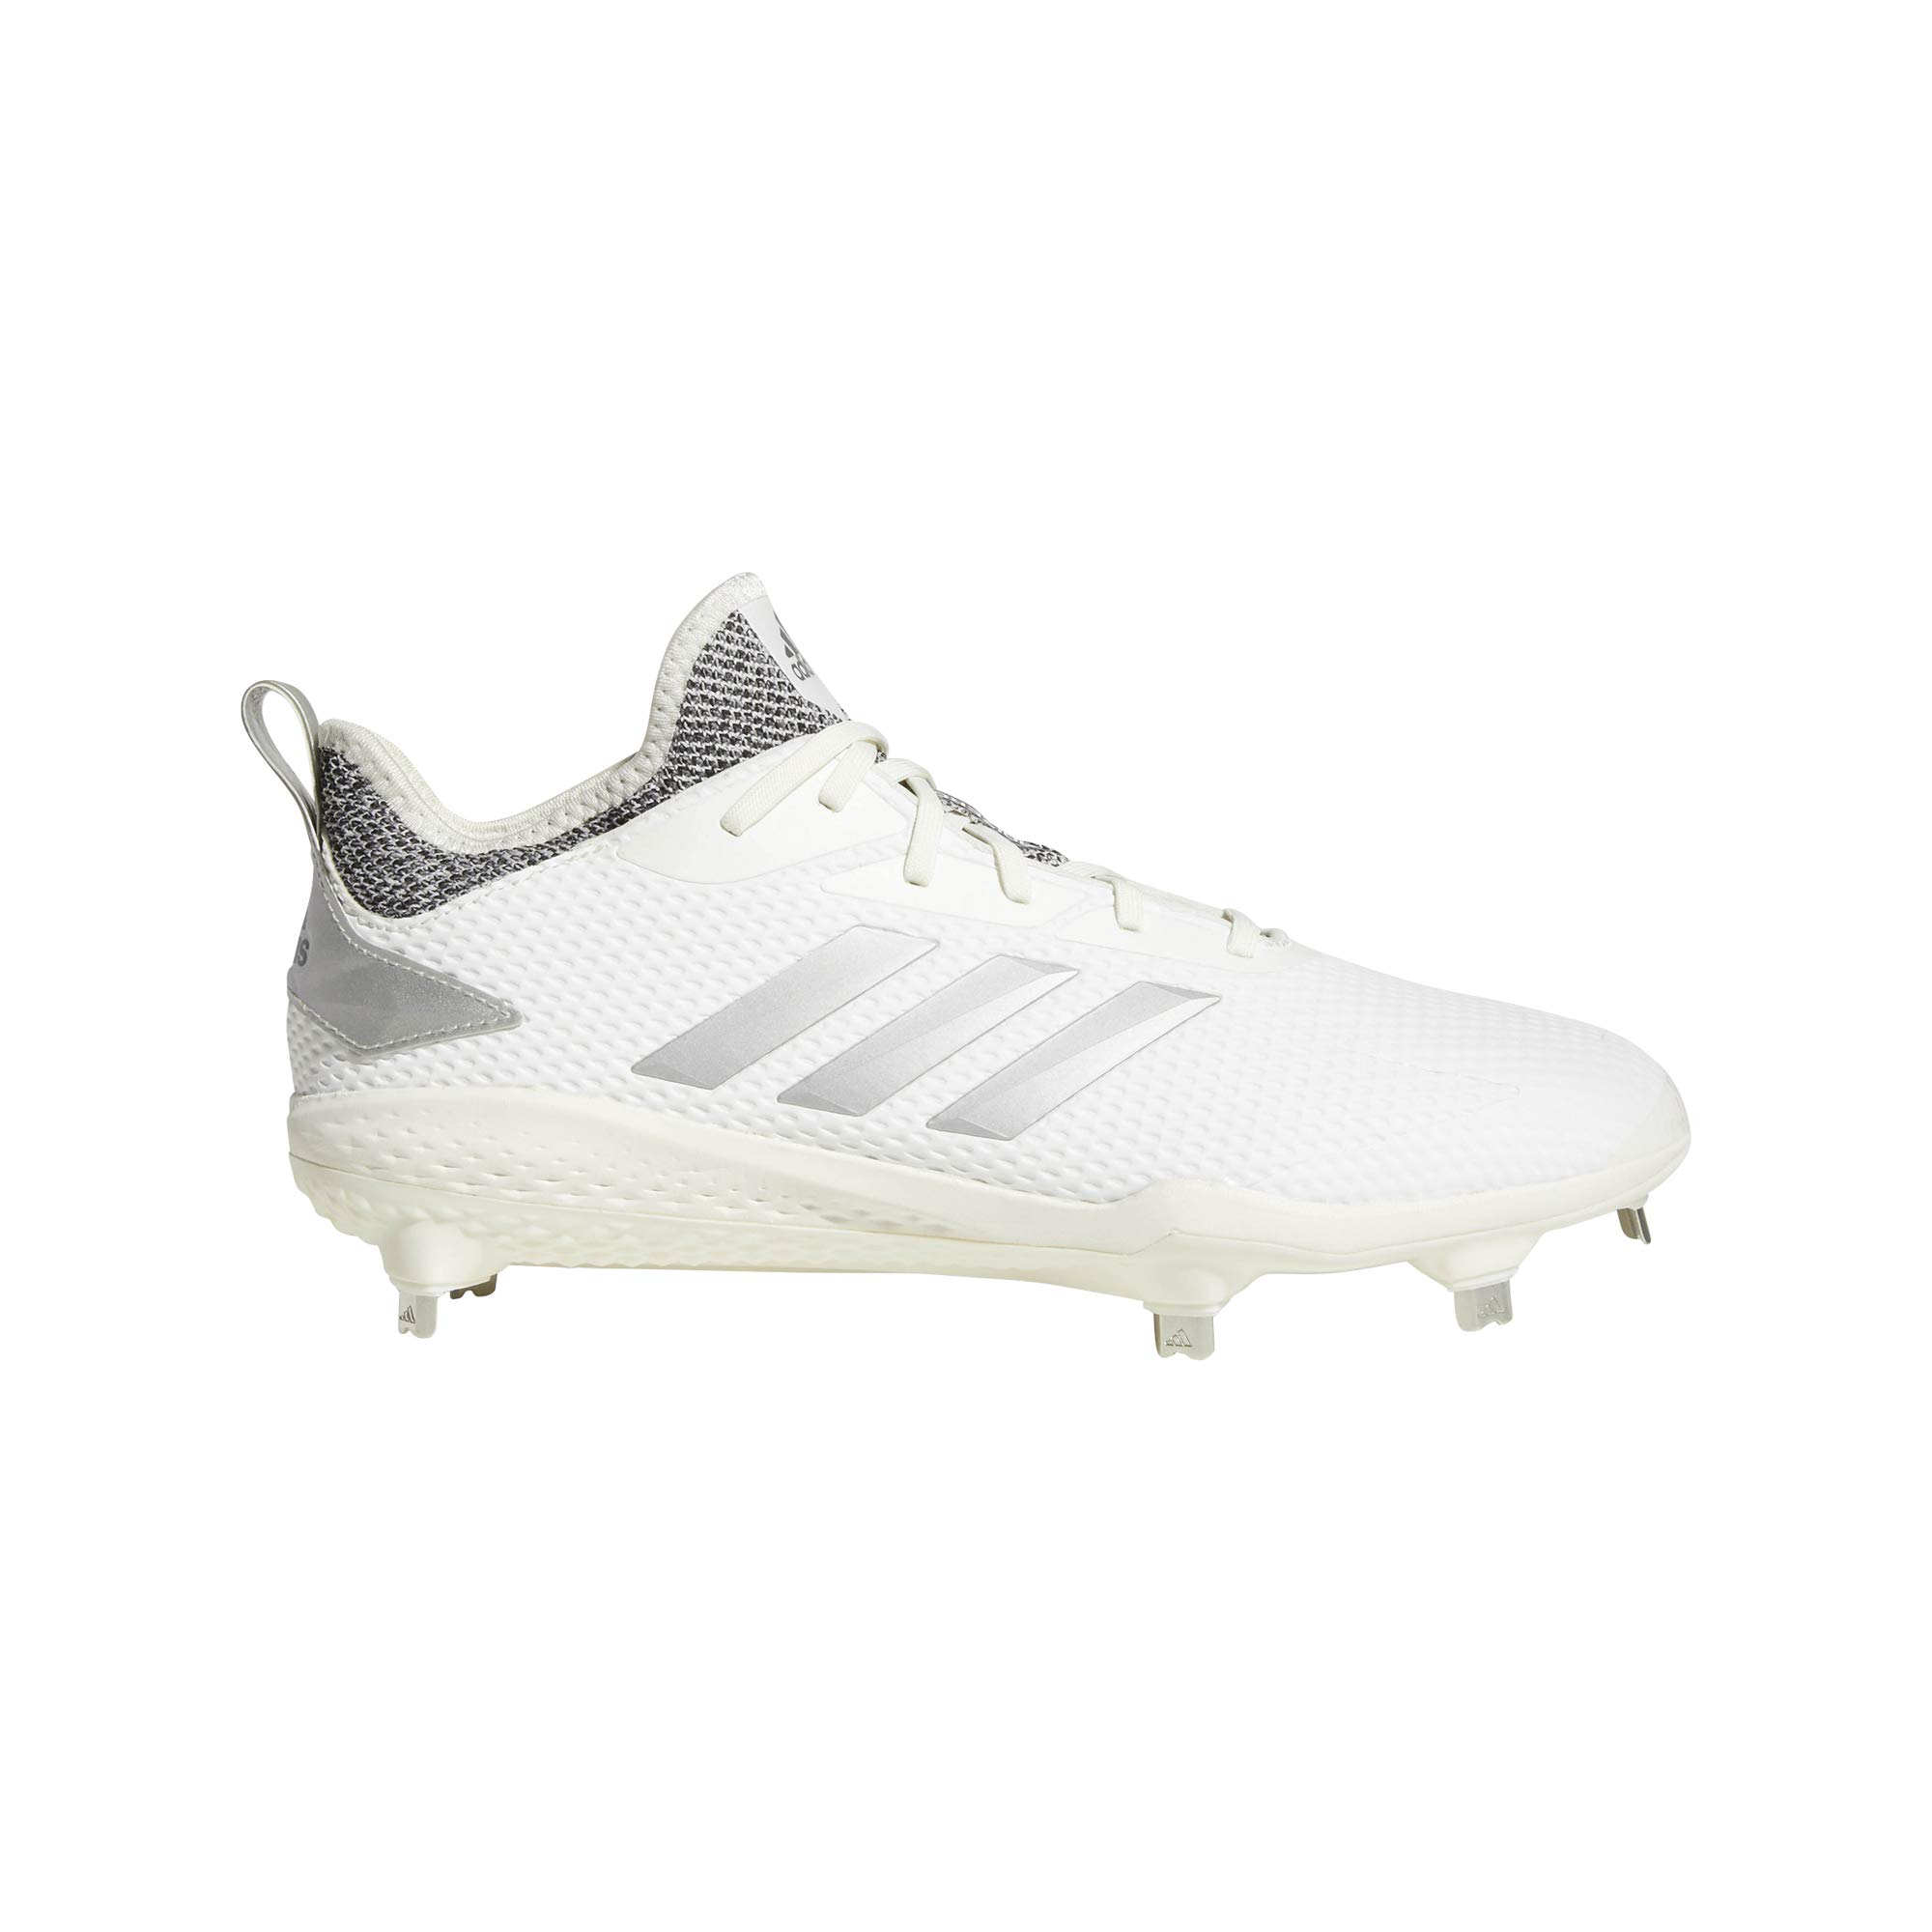 sports shoes bde7b 46c2f Galleon - Adidas Men s Adizero Afterburner V Baseball Shoe, Cloud White Grey,  8 M US